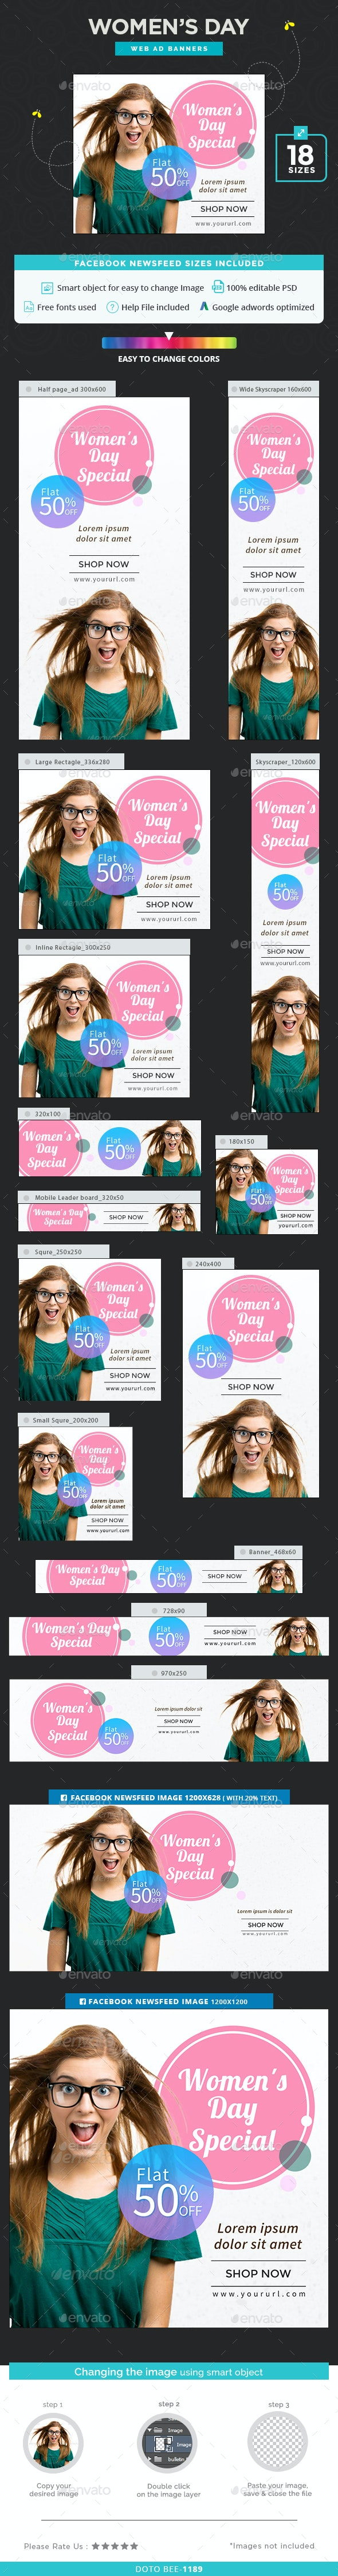 Women's Day Banners - Banners & Ads Web Elements